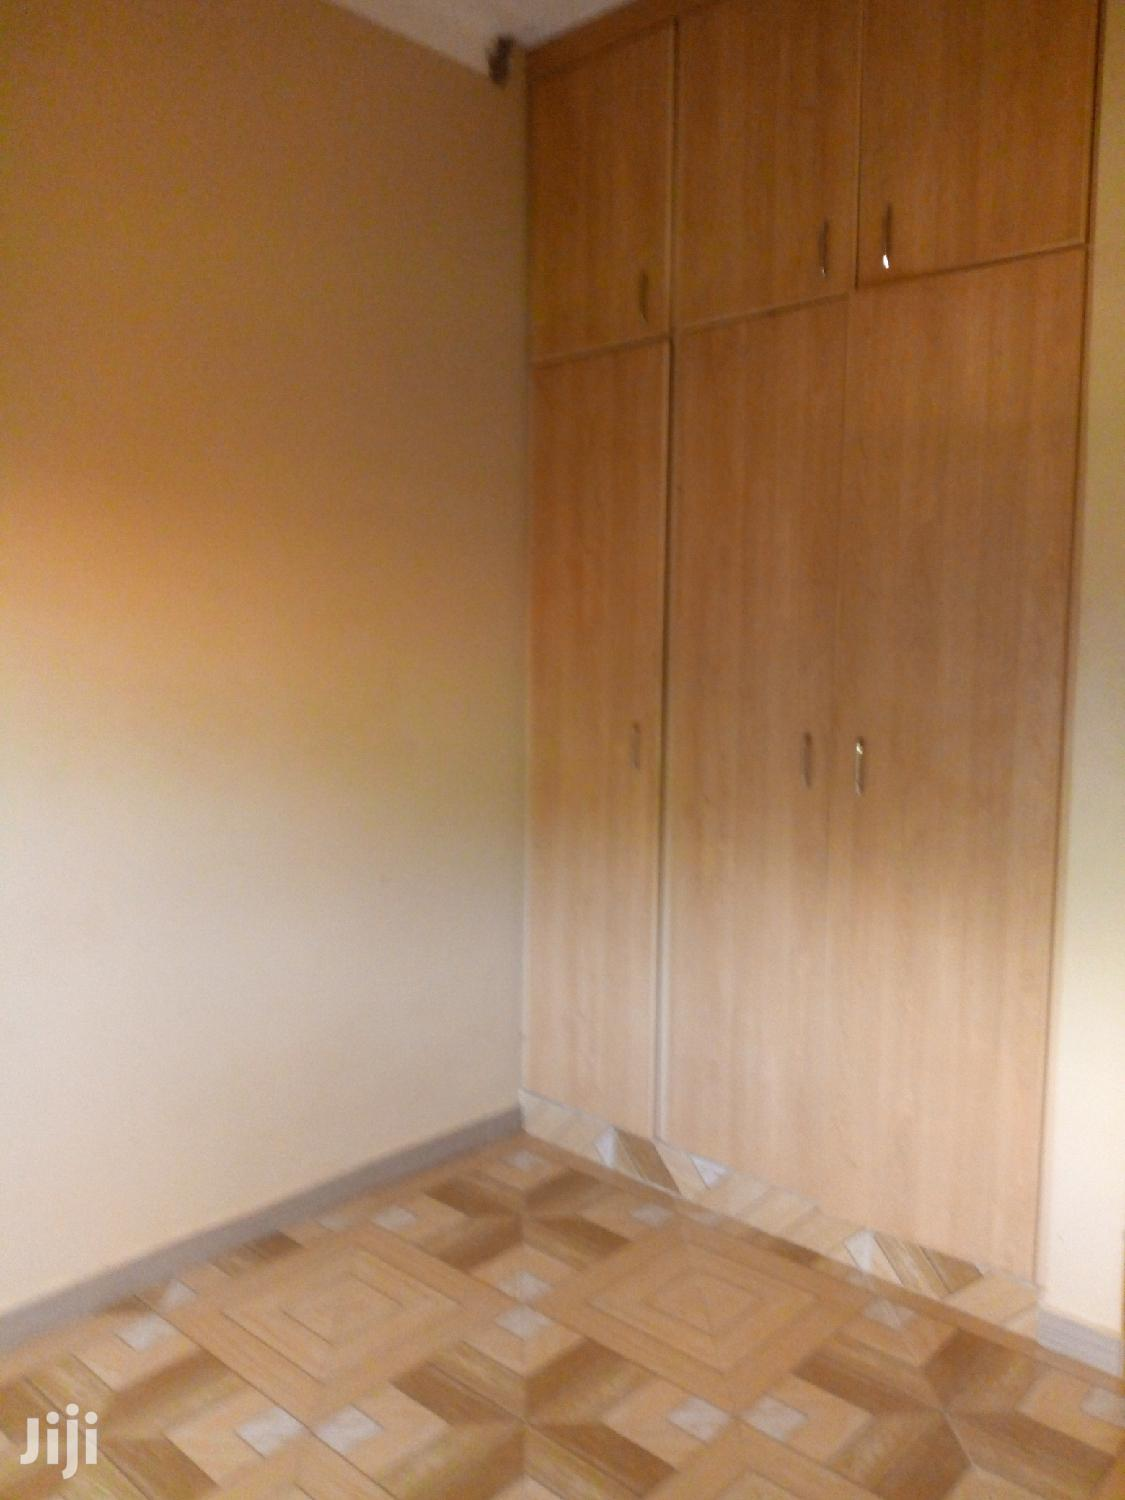 Kyaliwajjala Self Contained Single Room House For Rent | Houses & Apartments For Rent for sale in Kampala, Central Region, Uganda